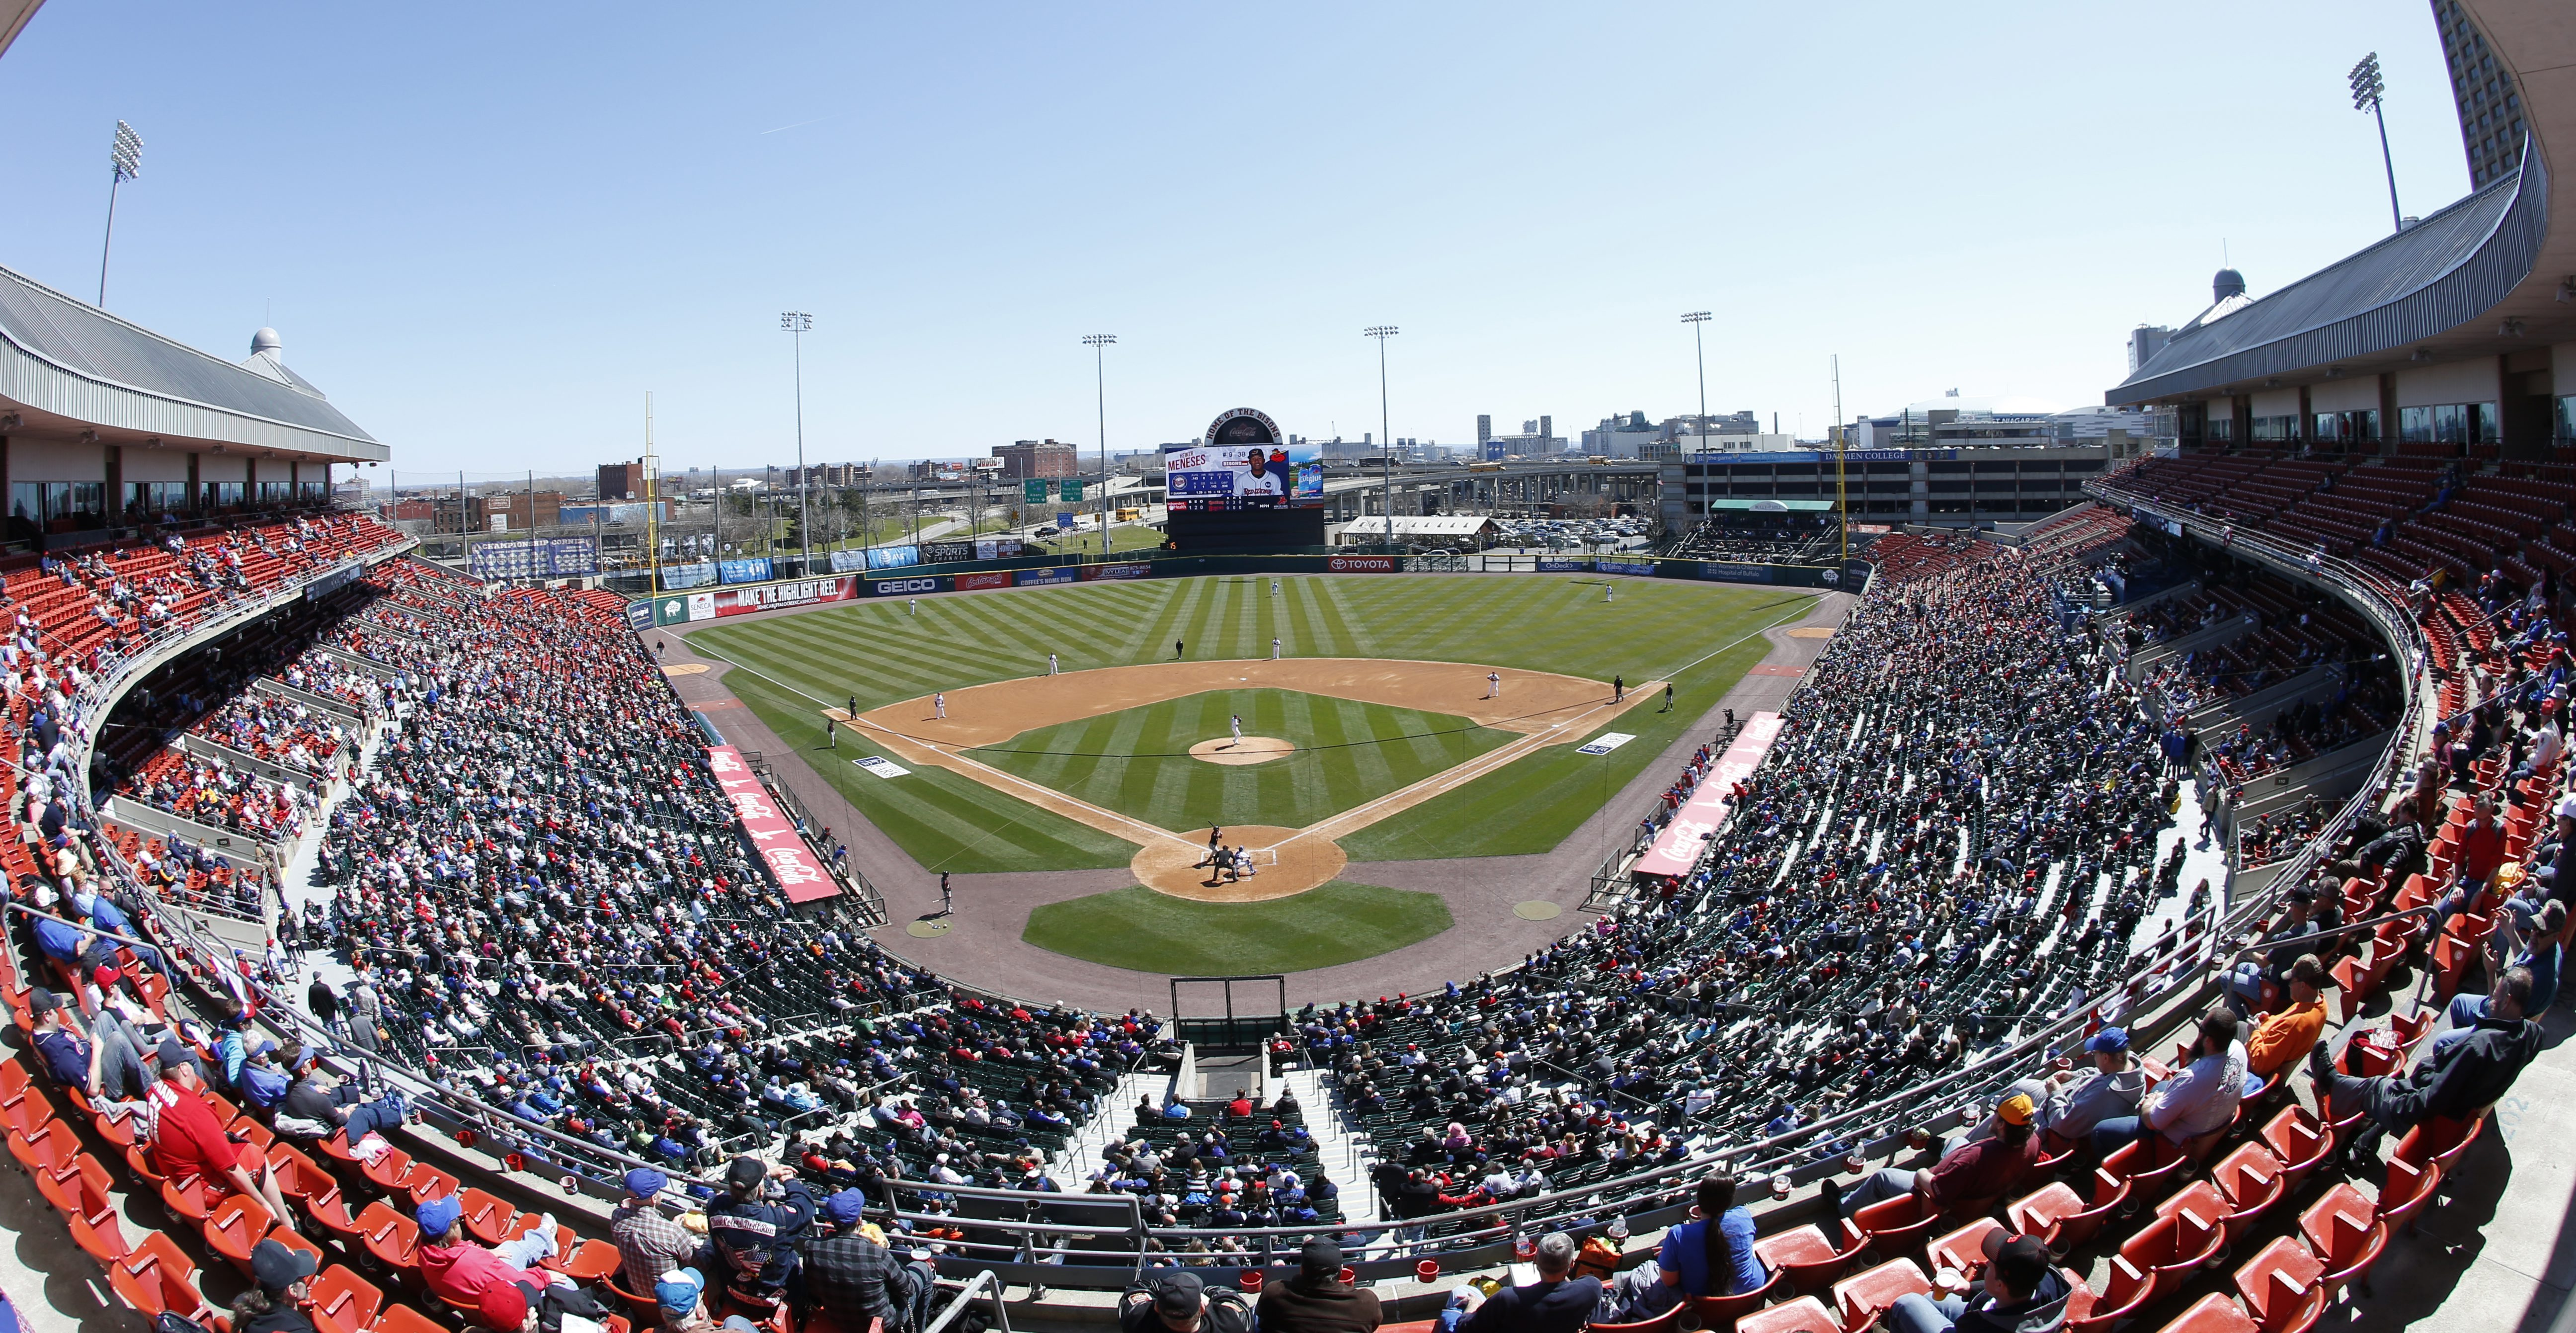 Opening day between the Buffalo Bisons and Rochester Red Wings at Coca-Cola Field on Thursday, April 14, 2016. (Harry Scull Jr./Buffalo News)